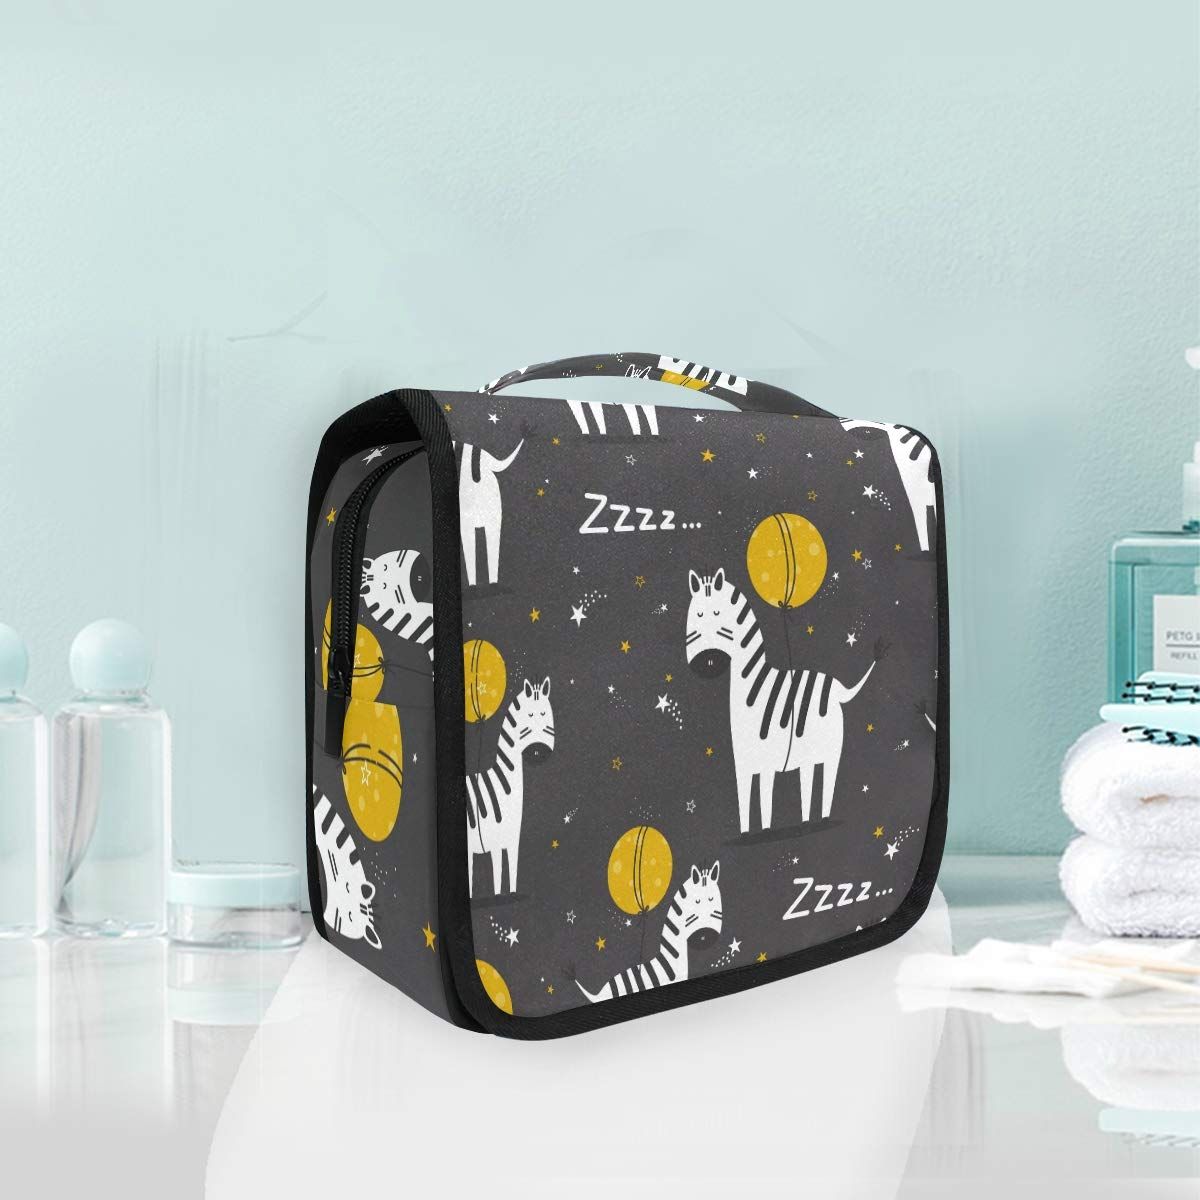 Toiletry Bag Hanging Travel Cosmetic Bag Large Capacity Portable Makeup Bag Zebra Organizer Pouch for Women Girls